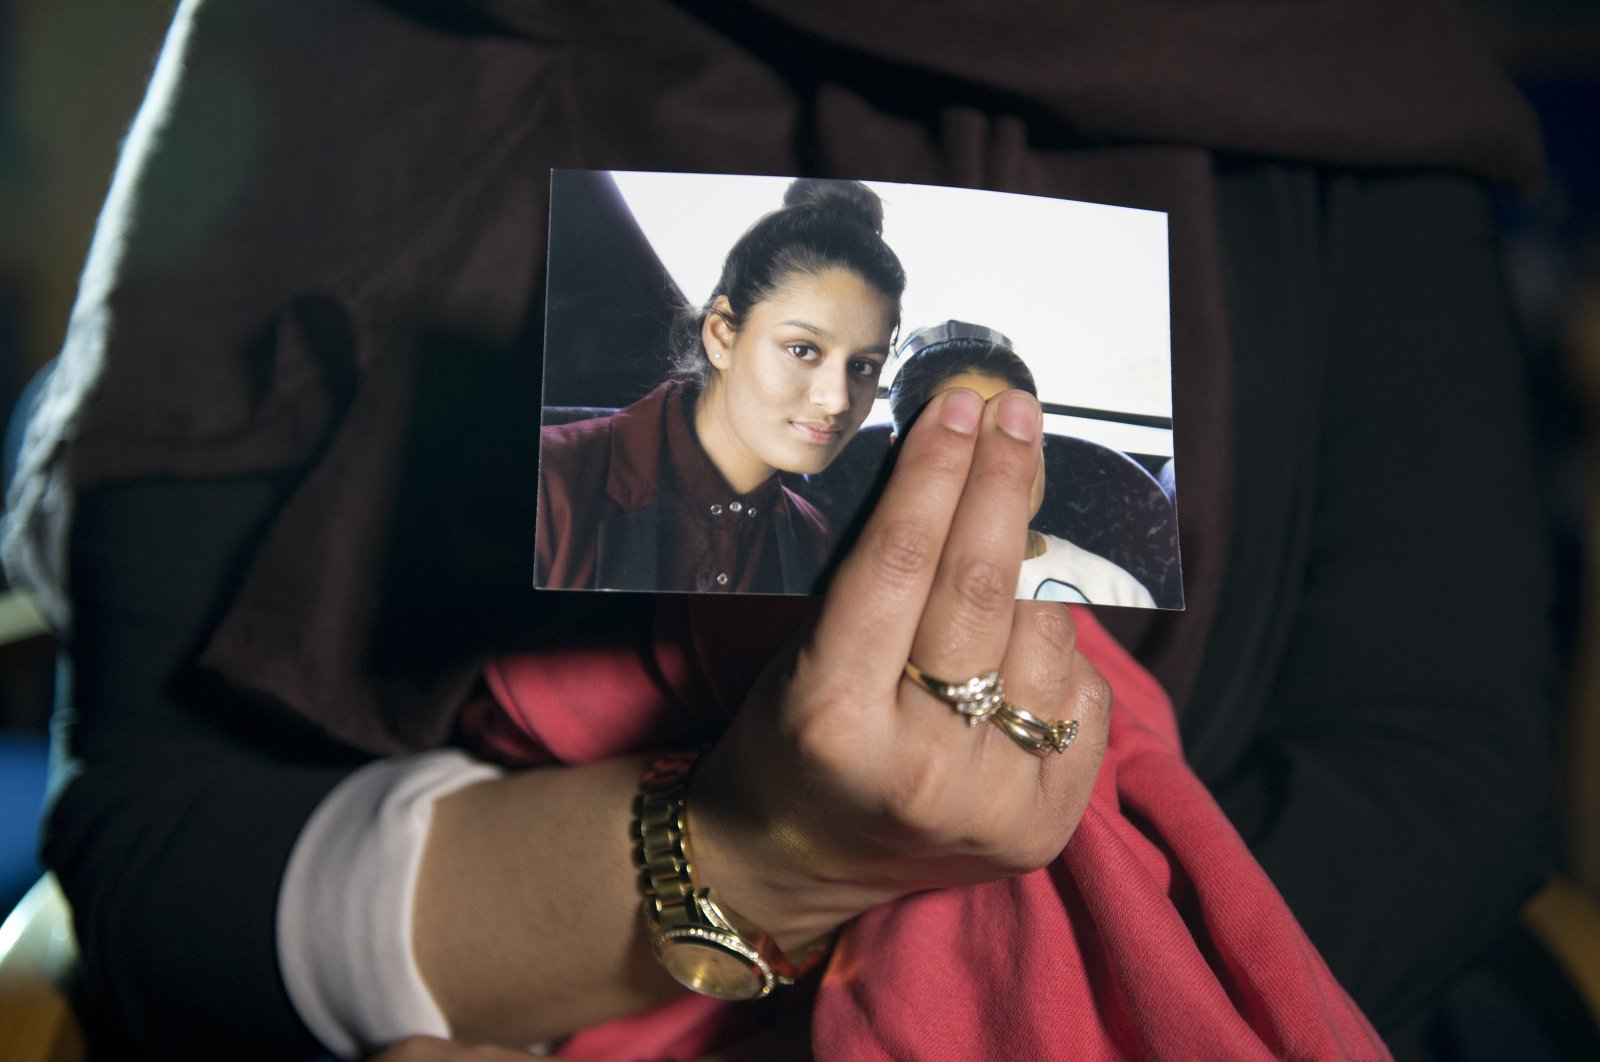 Renu Begum, the eldest sister of Shamima Begum, 15, holds her sister's photo as she is interviewed by the media at New Scotland Yard, London, U.K., Feb. 22, 2015. (Photo by Getty Images)